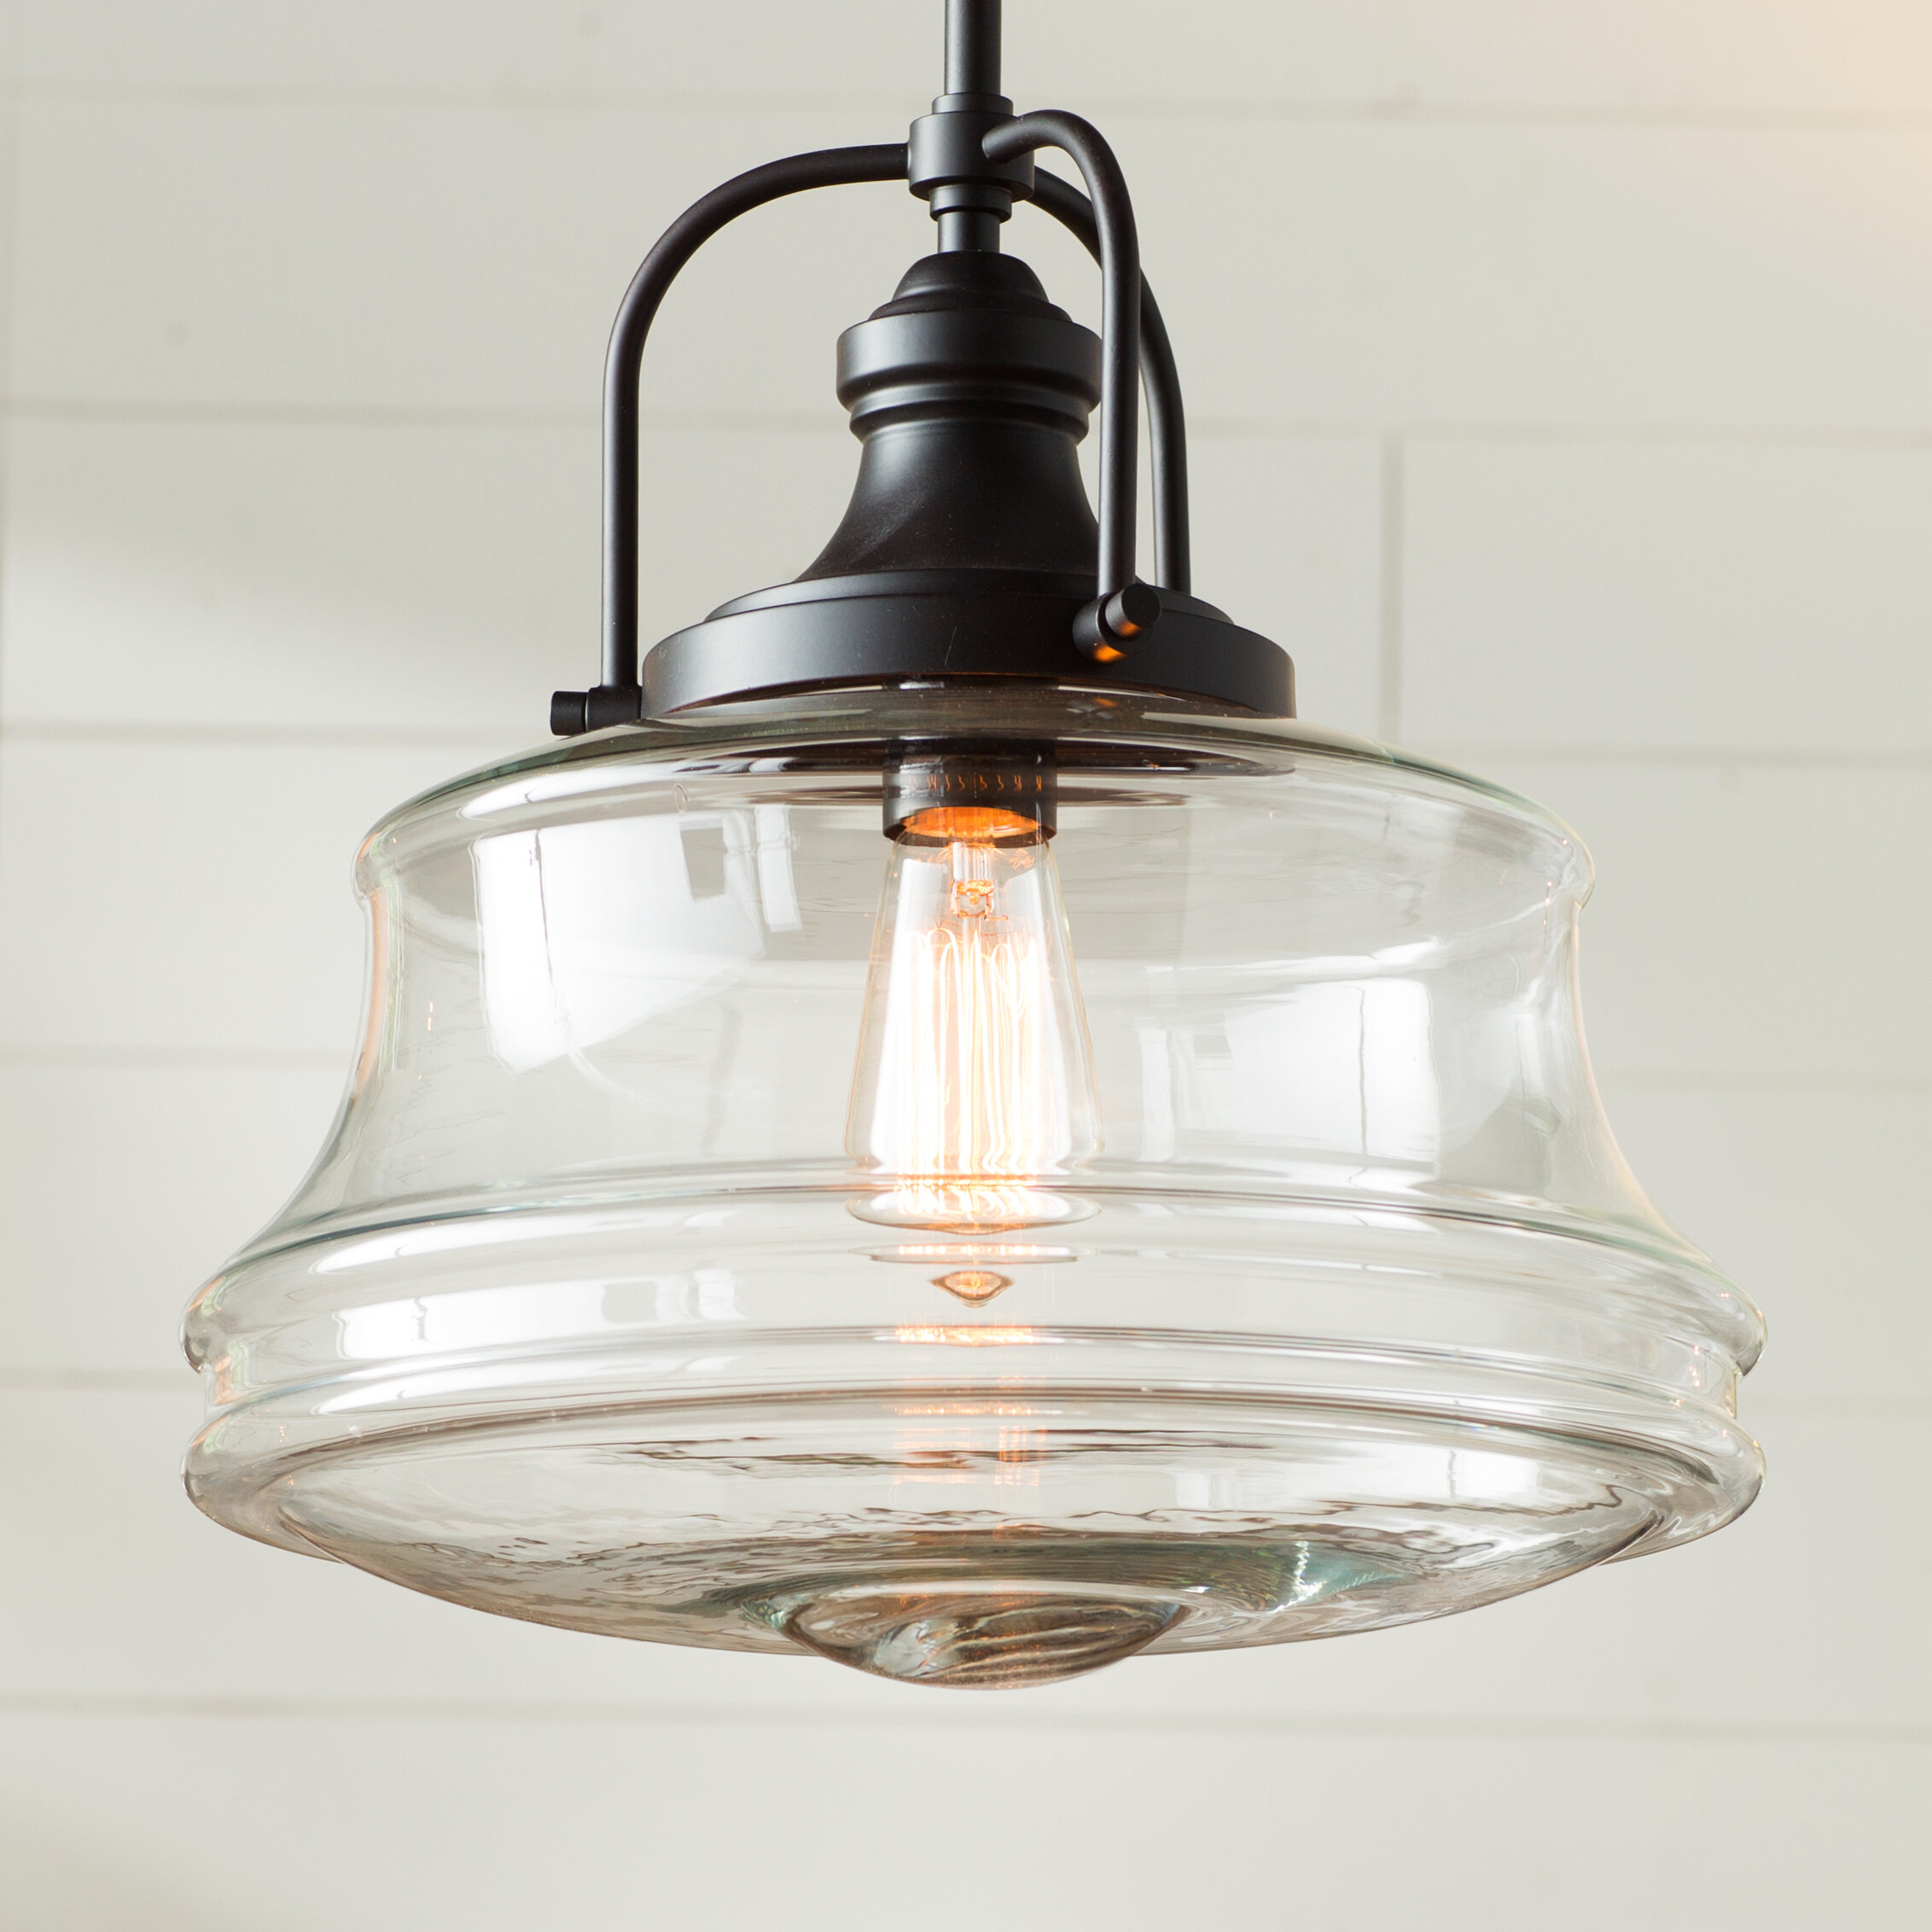 pendant depot hanging fixture sofa rhestarsystemcom chandelier light cope home lighting kitchen rhhonoringnativelifeorg awesome trends lights industrial ceiling